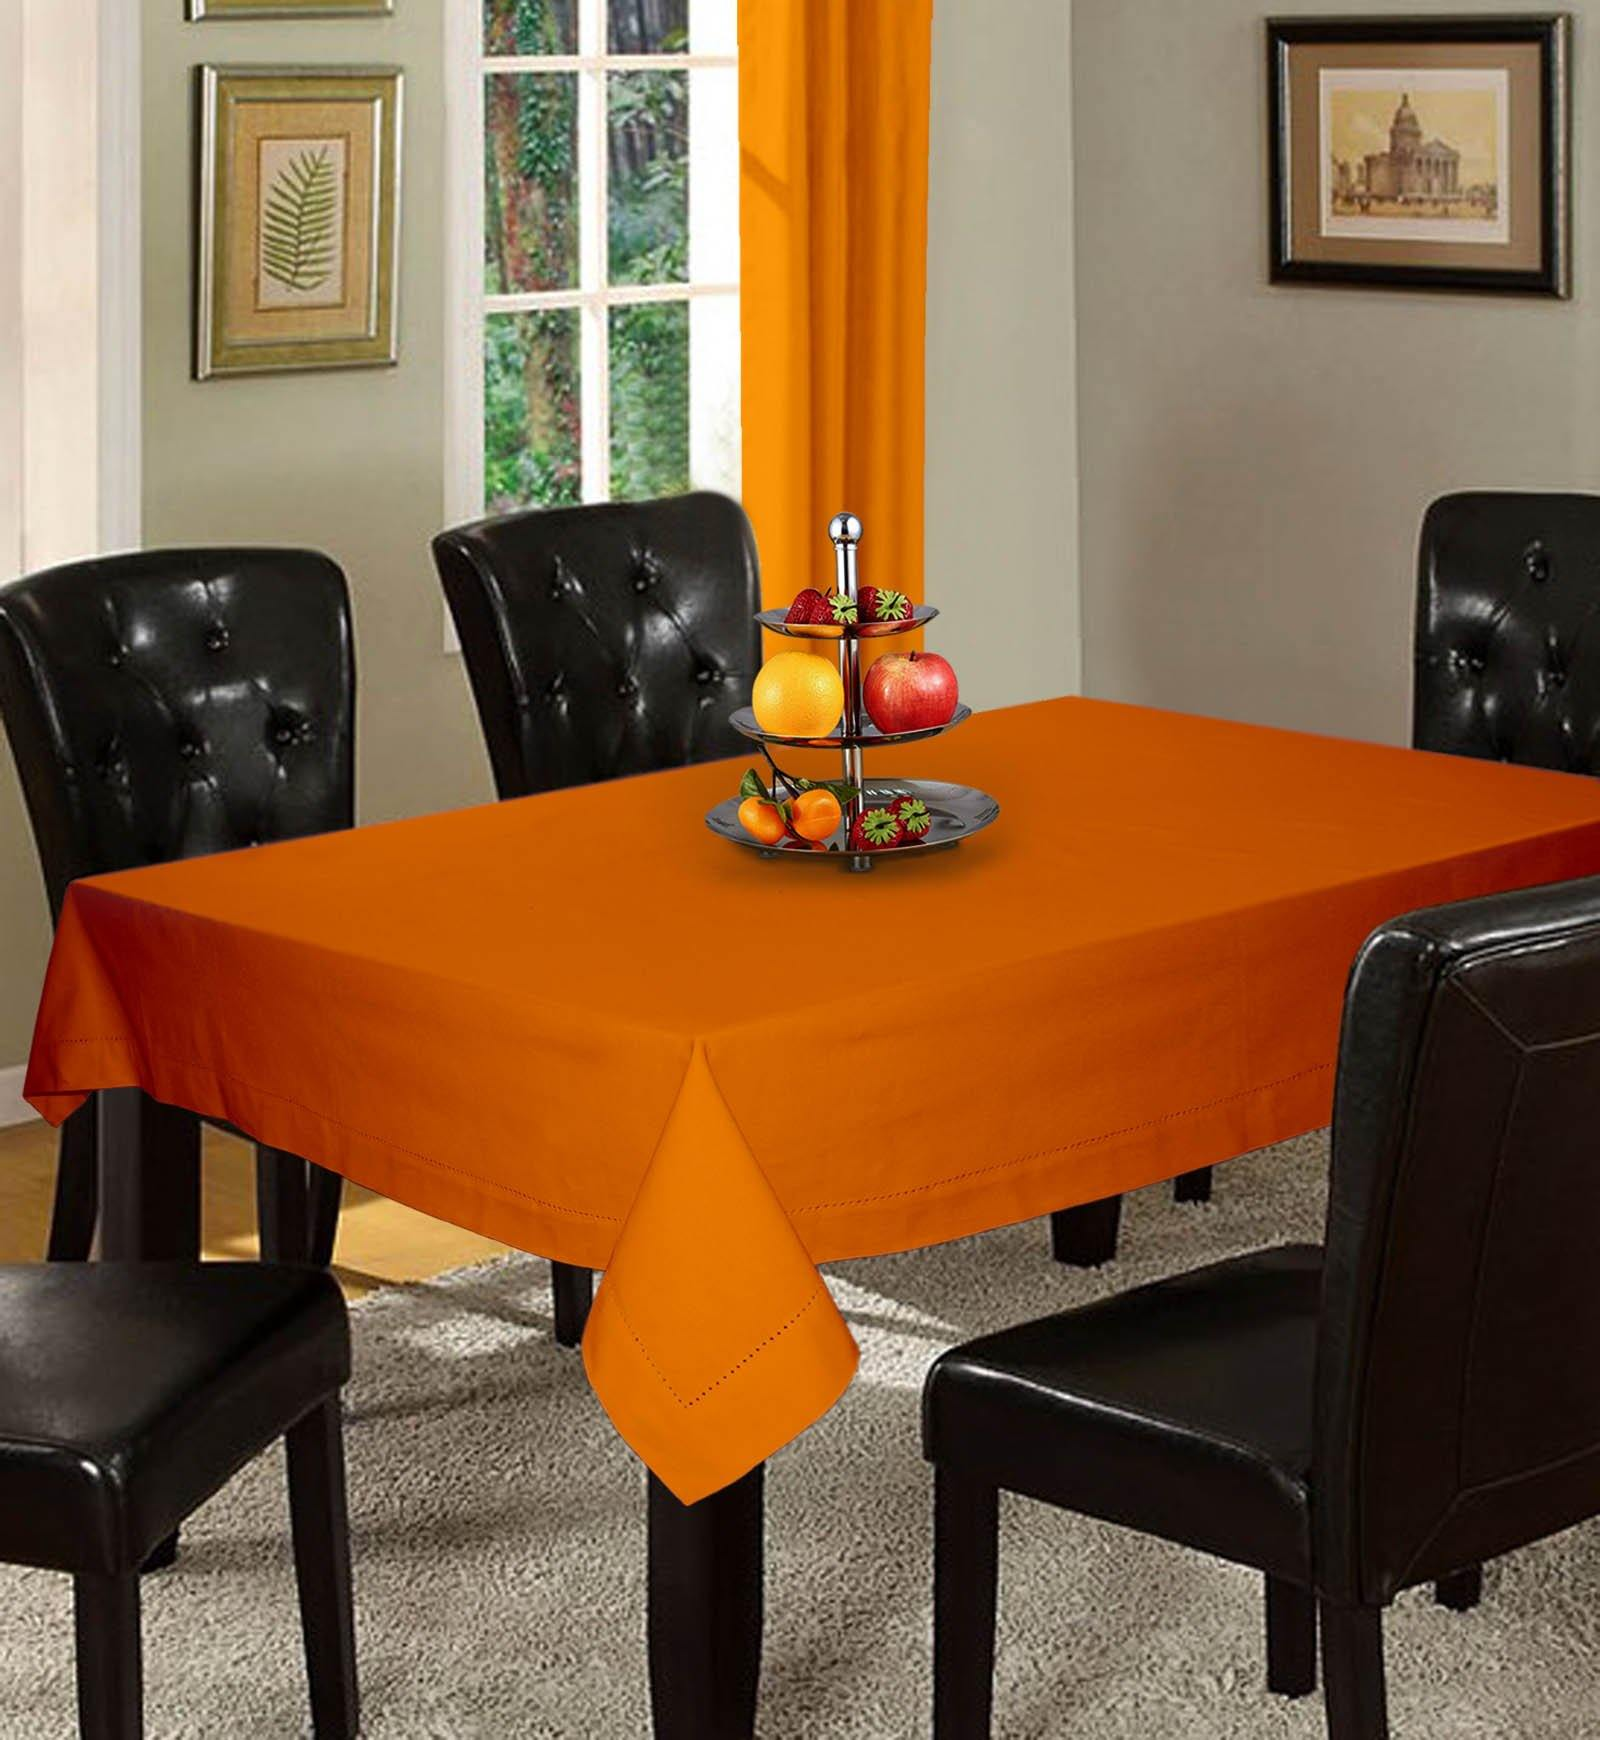 Lushomes Plain Sun Orange Holestitch Cotton for 8 Seater Orange Table Covers - Lushomes